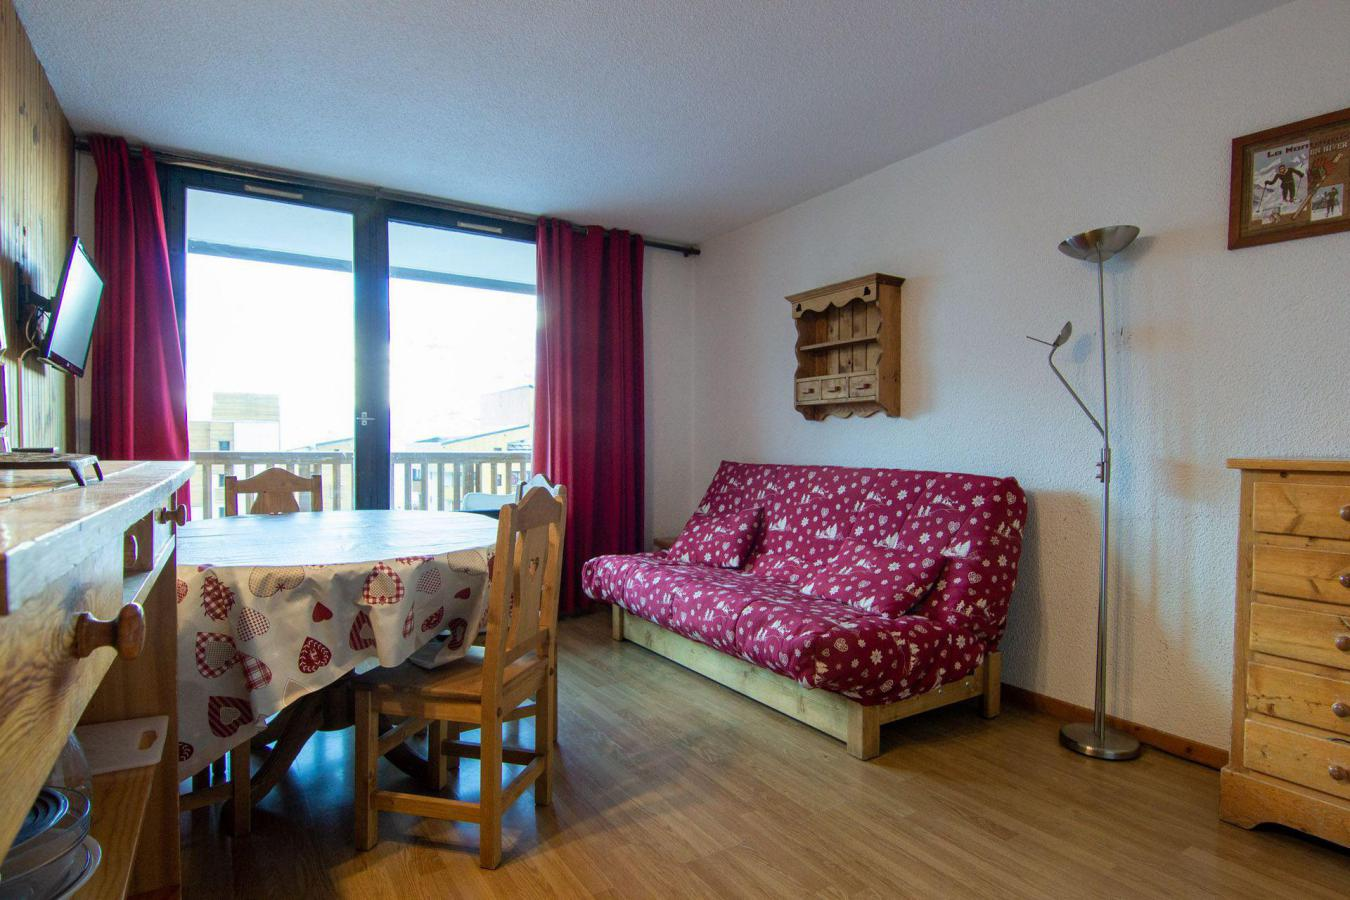 Location au ski Appartement 3 pièces 6 personnes (72) - Residence Roche Blanche - Val Thorens - Chambre